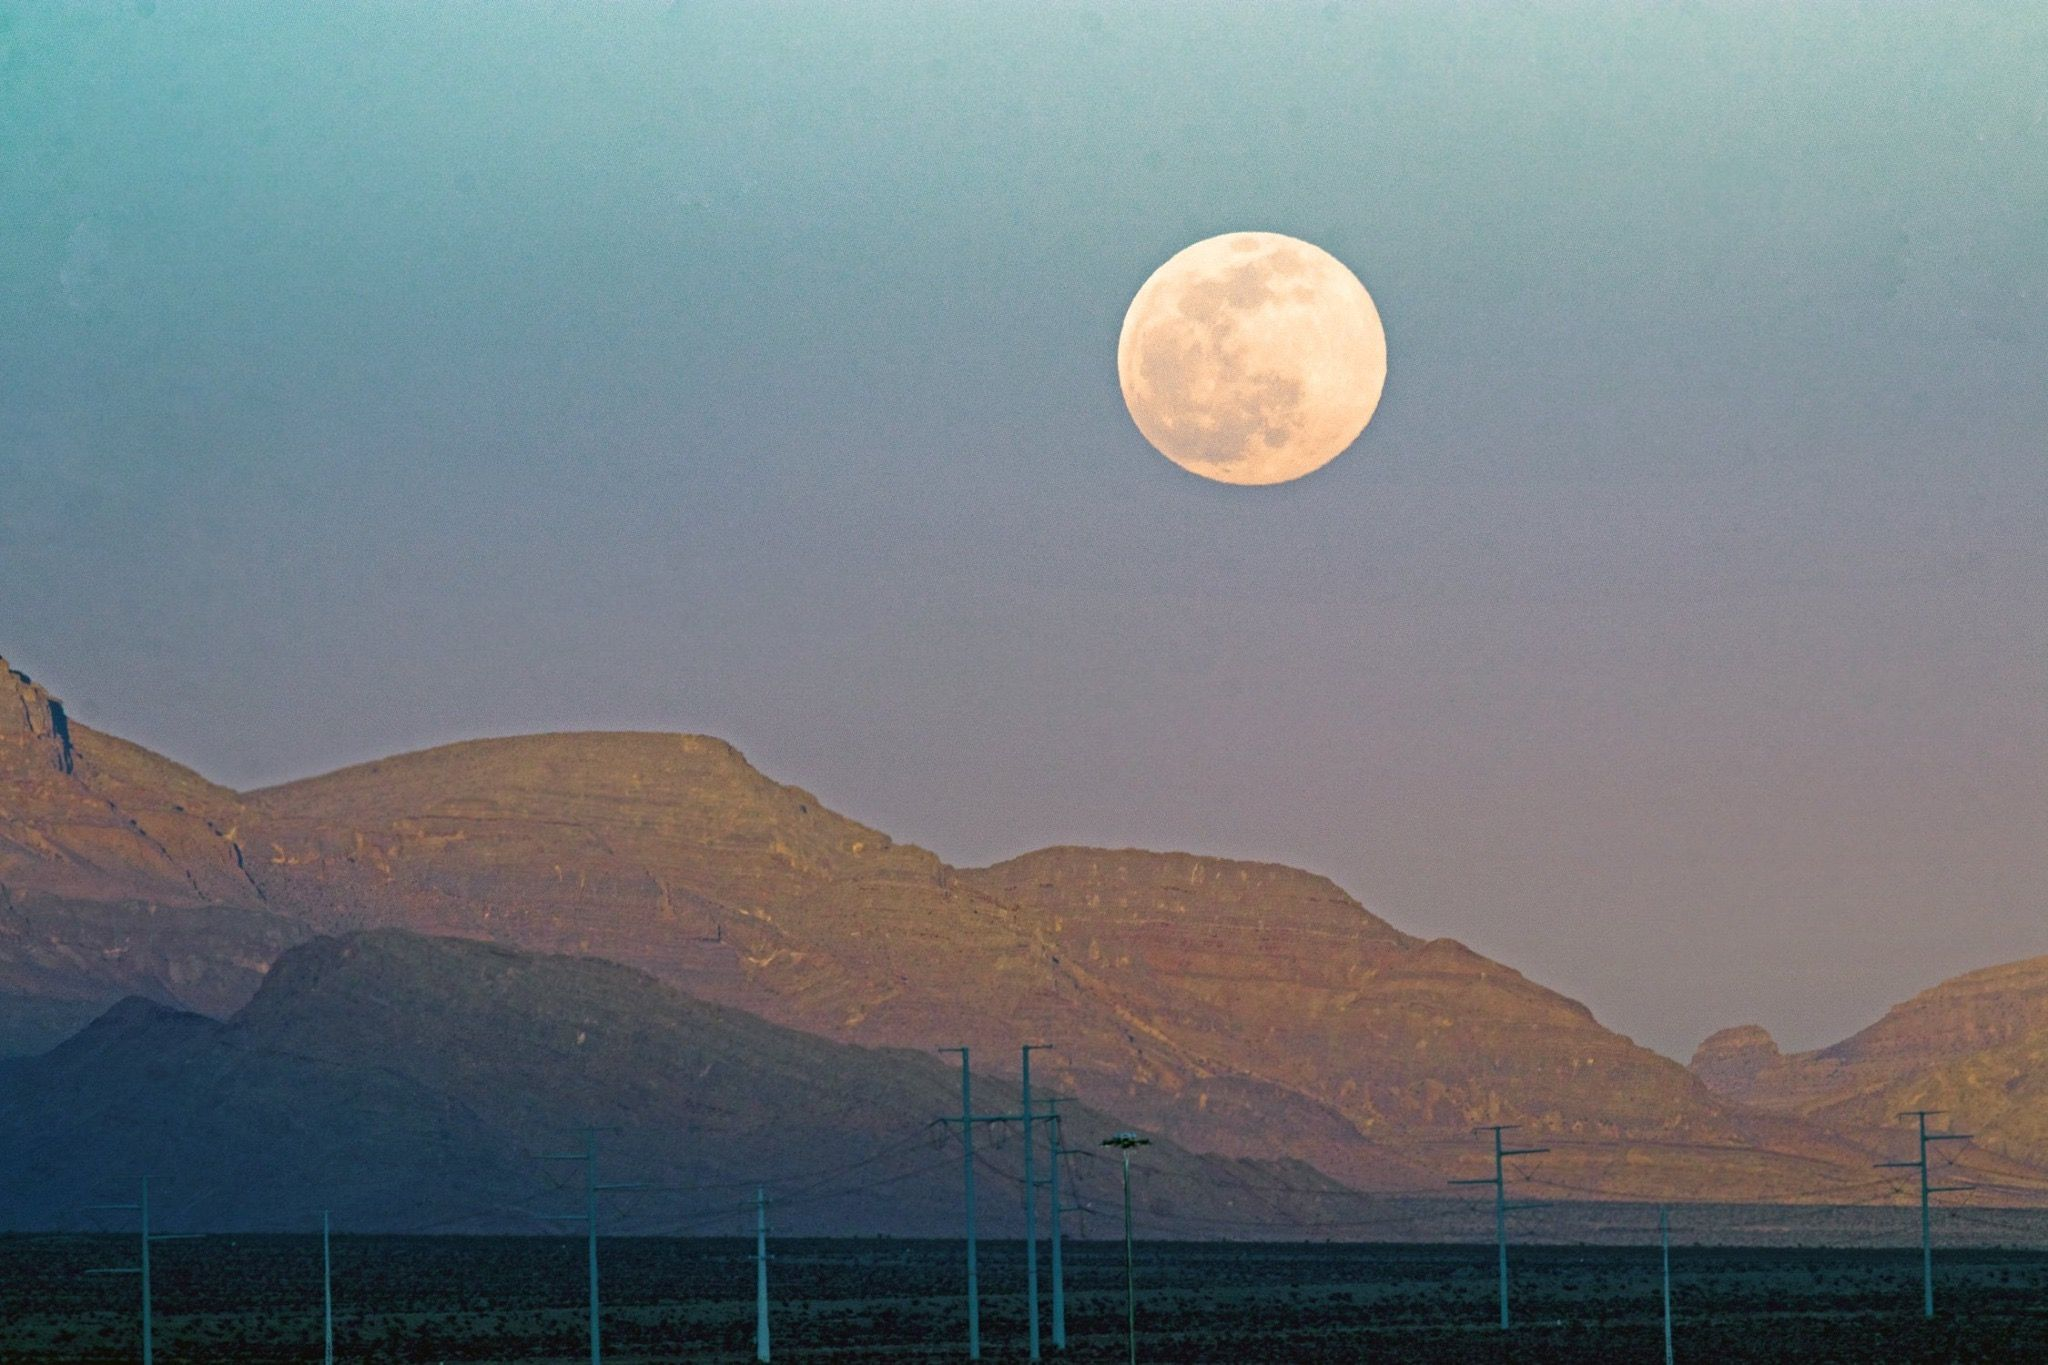 Super Moon Over North Las Vegas Nv 2 8 2020 Photo By Daniel Guzy Nevada Nature Lovers Via Fb Nevada Nature North Las Vegas Nature Lover